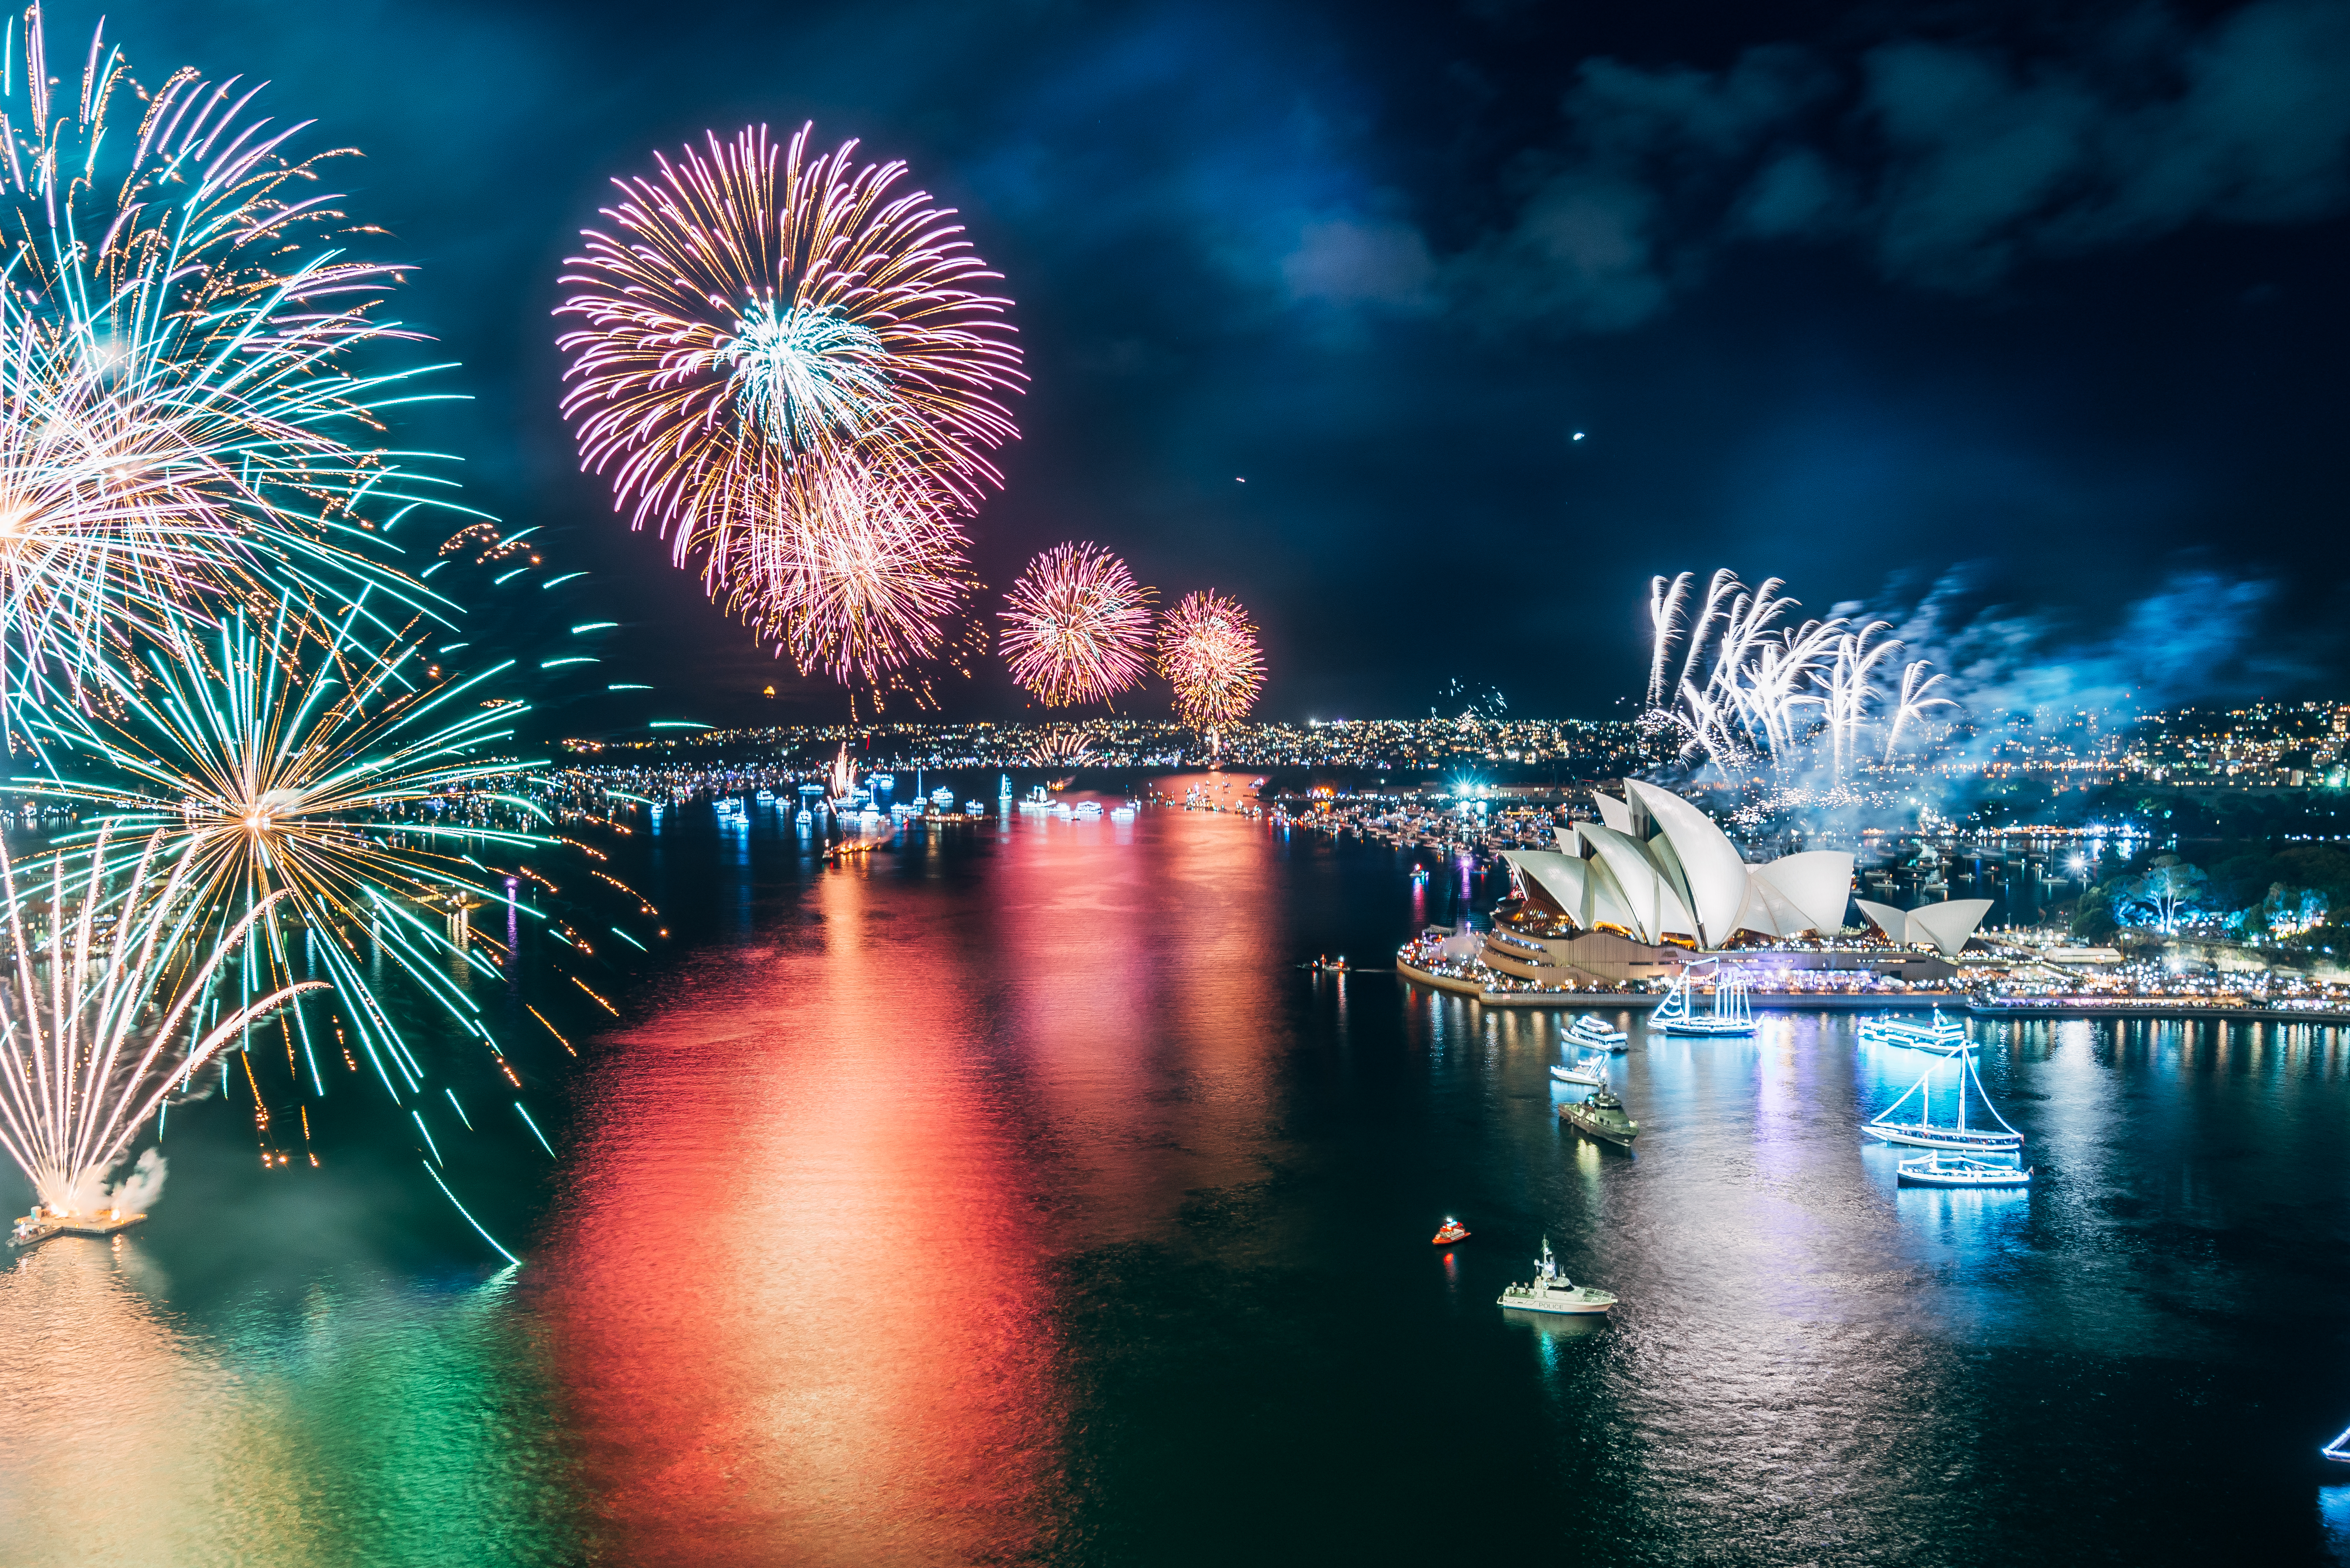 Sydney - New Year's Eve Fireworks 2015/16